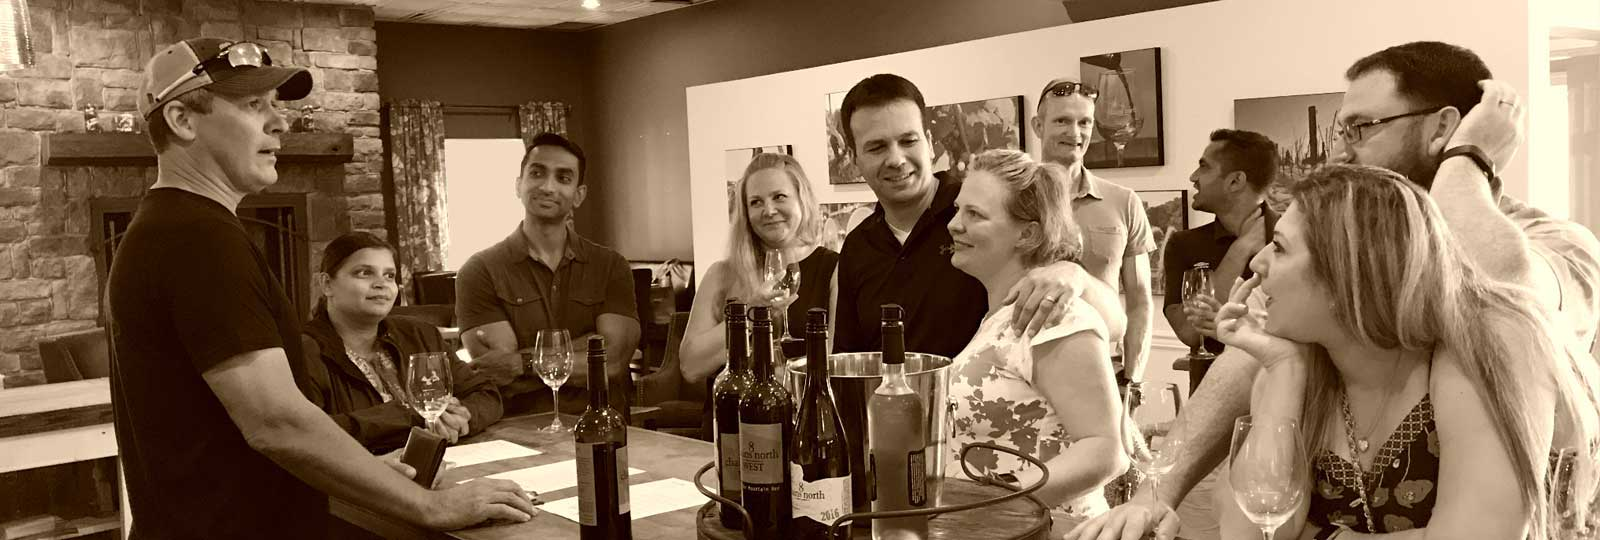 Wine tasting and education at Loudoun County winery 8 Chains North